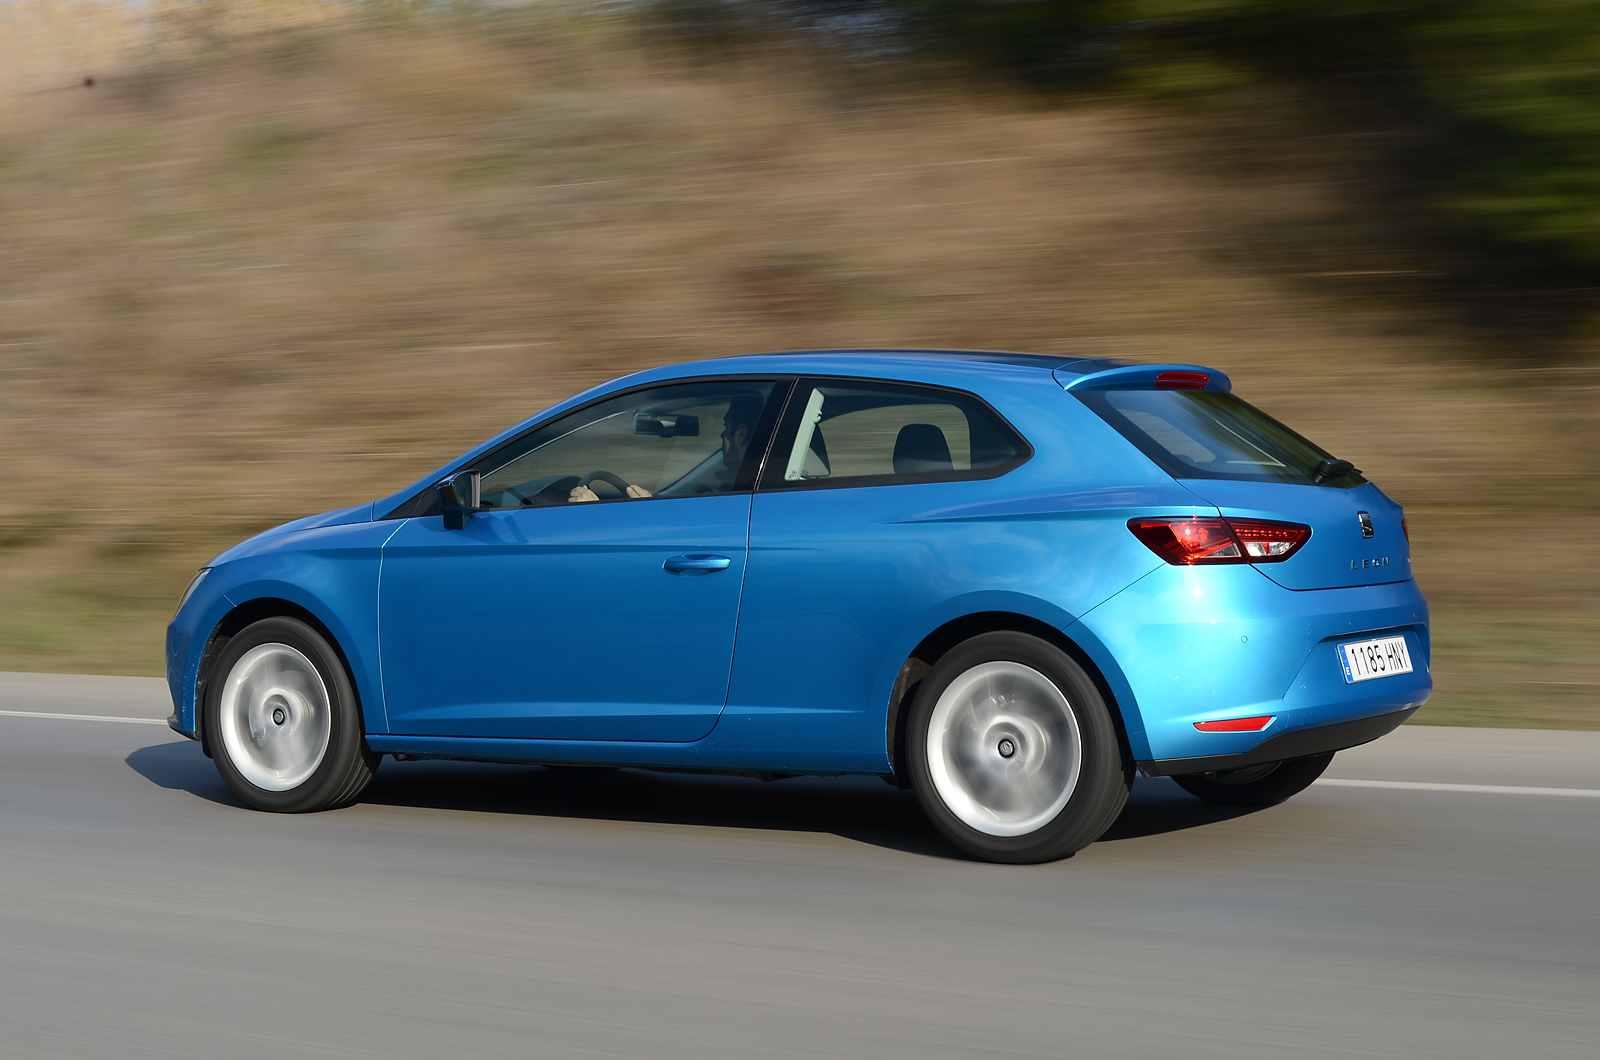 seat leon sc 1 4 tsi 140 first drive review autocar. Black Bedroom Furniture Sets. Home Design Ideas